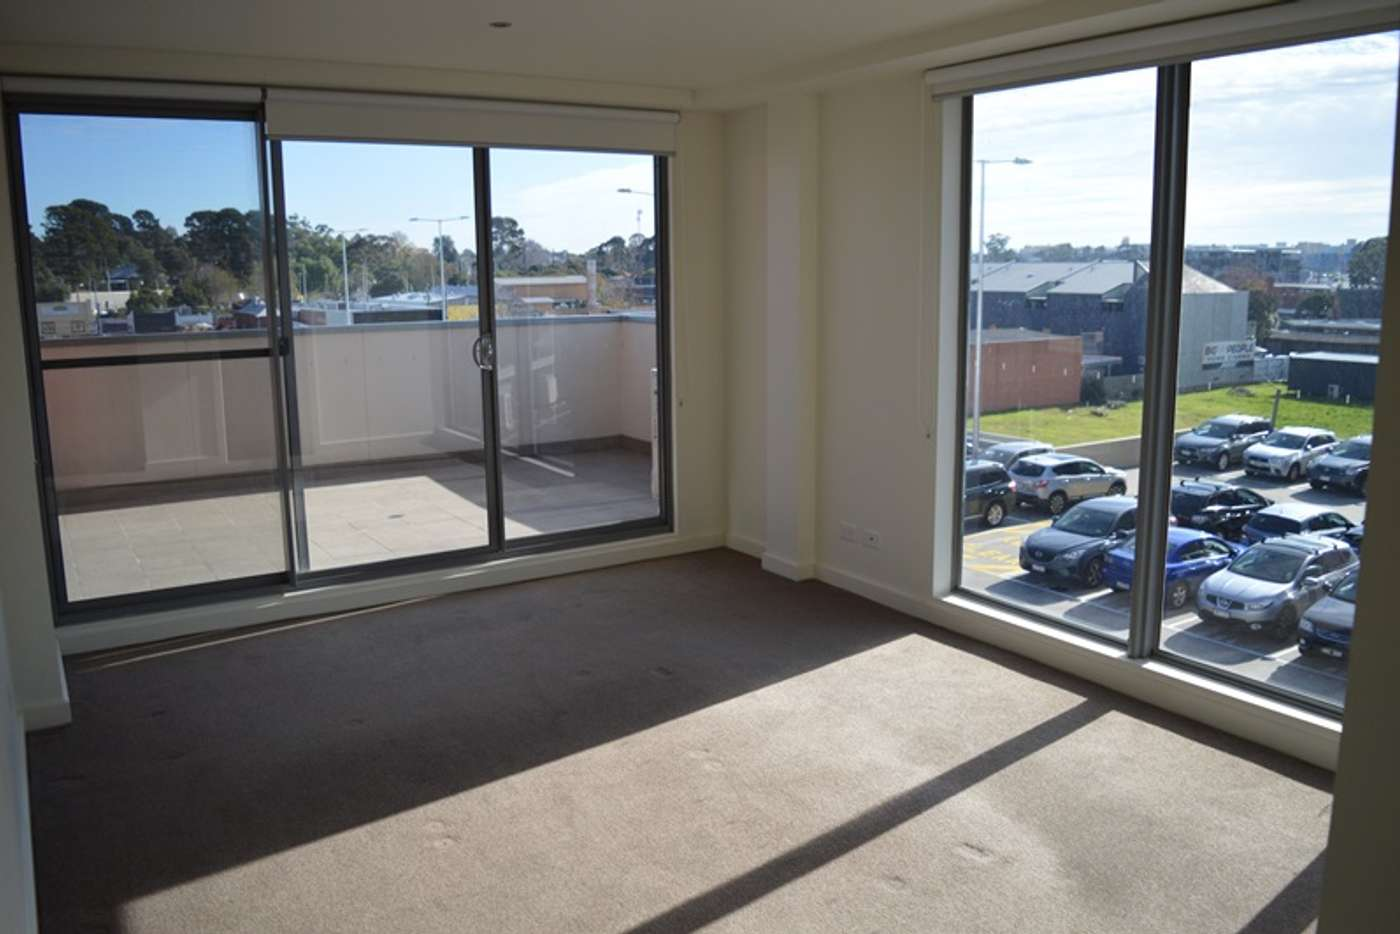 Seventh view of Homely apartment listing, 406/37-39 Station Road, Cheltenham VIC 3192